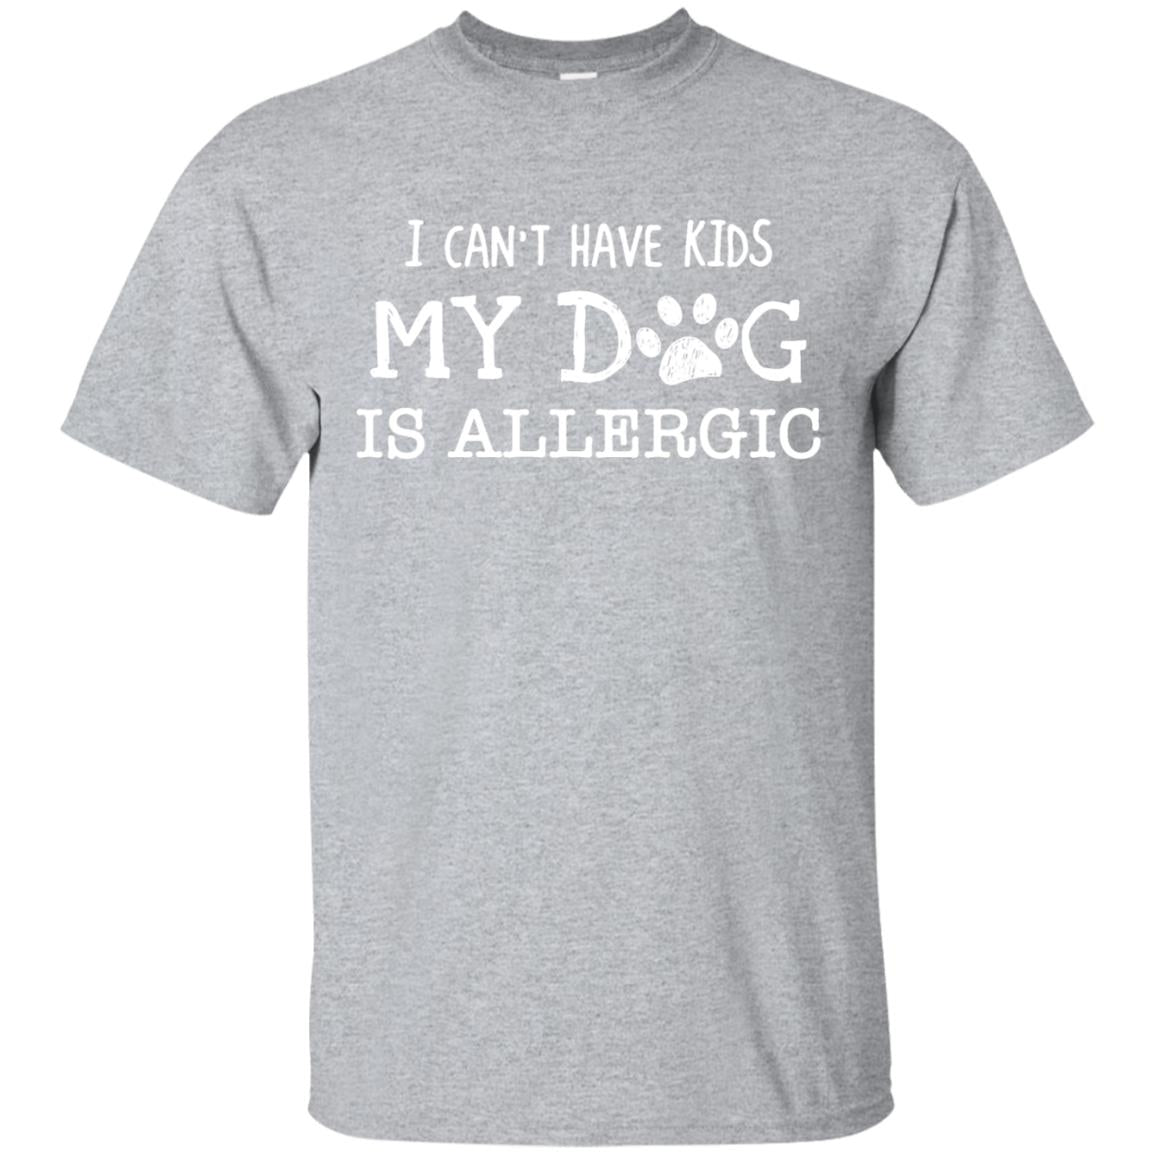 I can't have kids my dog is allergic shirt dog pet funny 99promocode